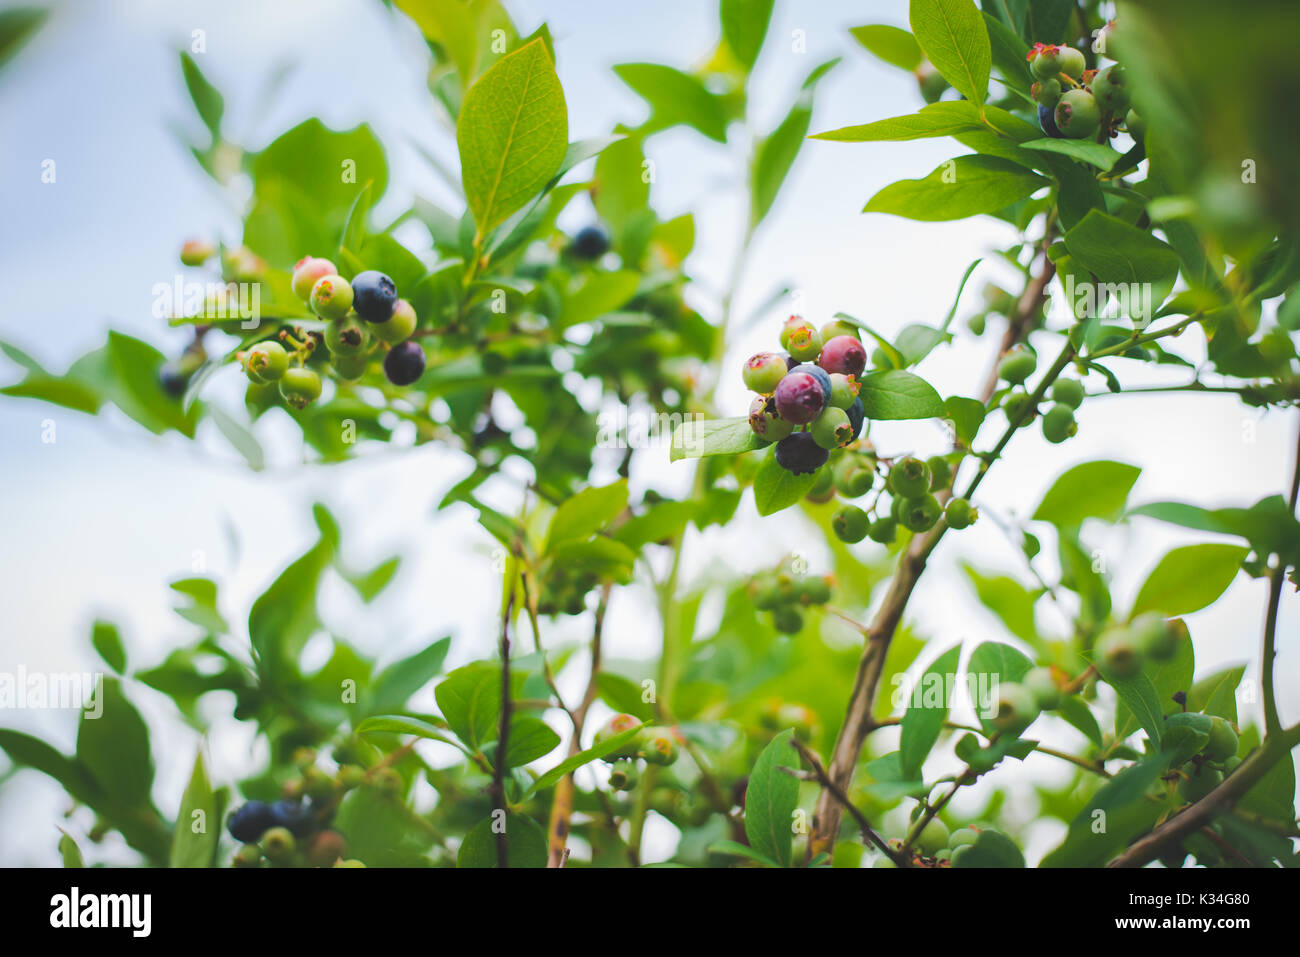 Blueberries on a blueberry bush against a blue sky in rural USA - Stock Image